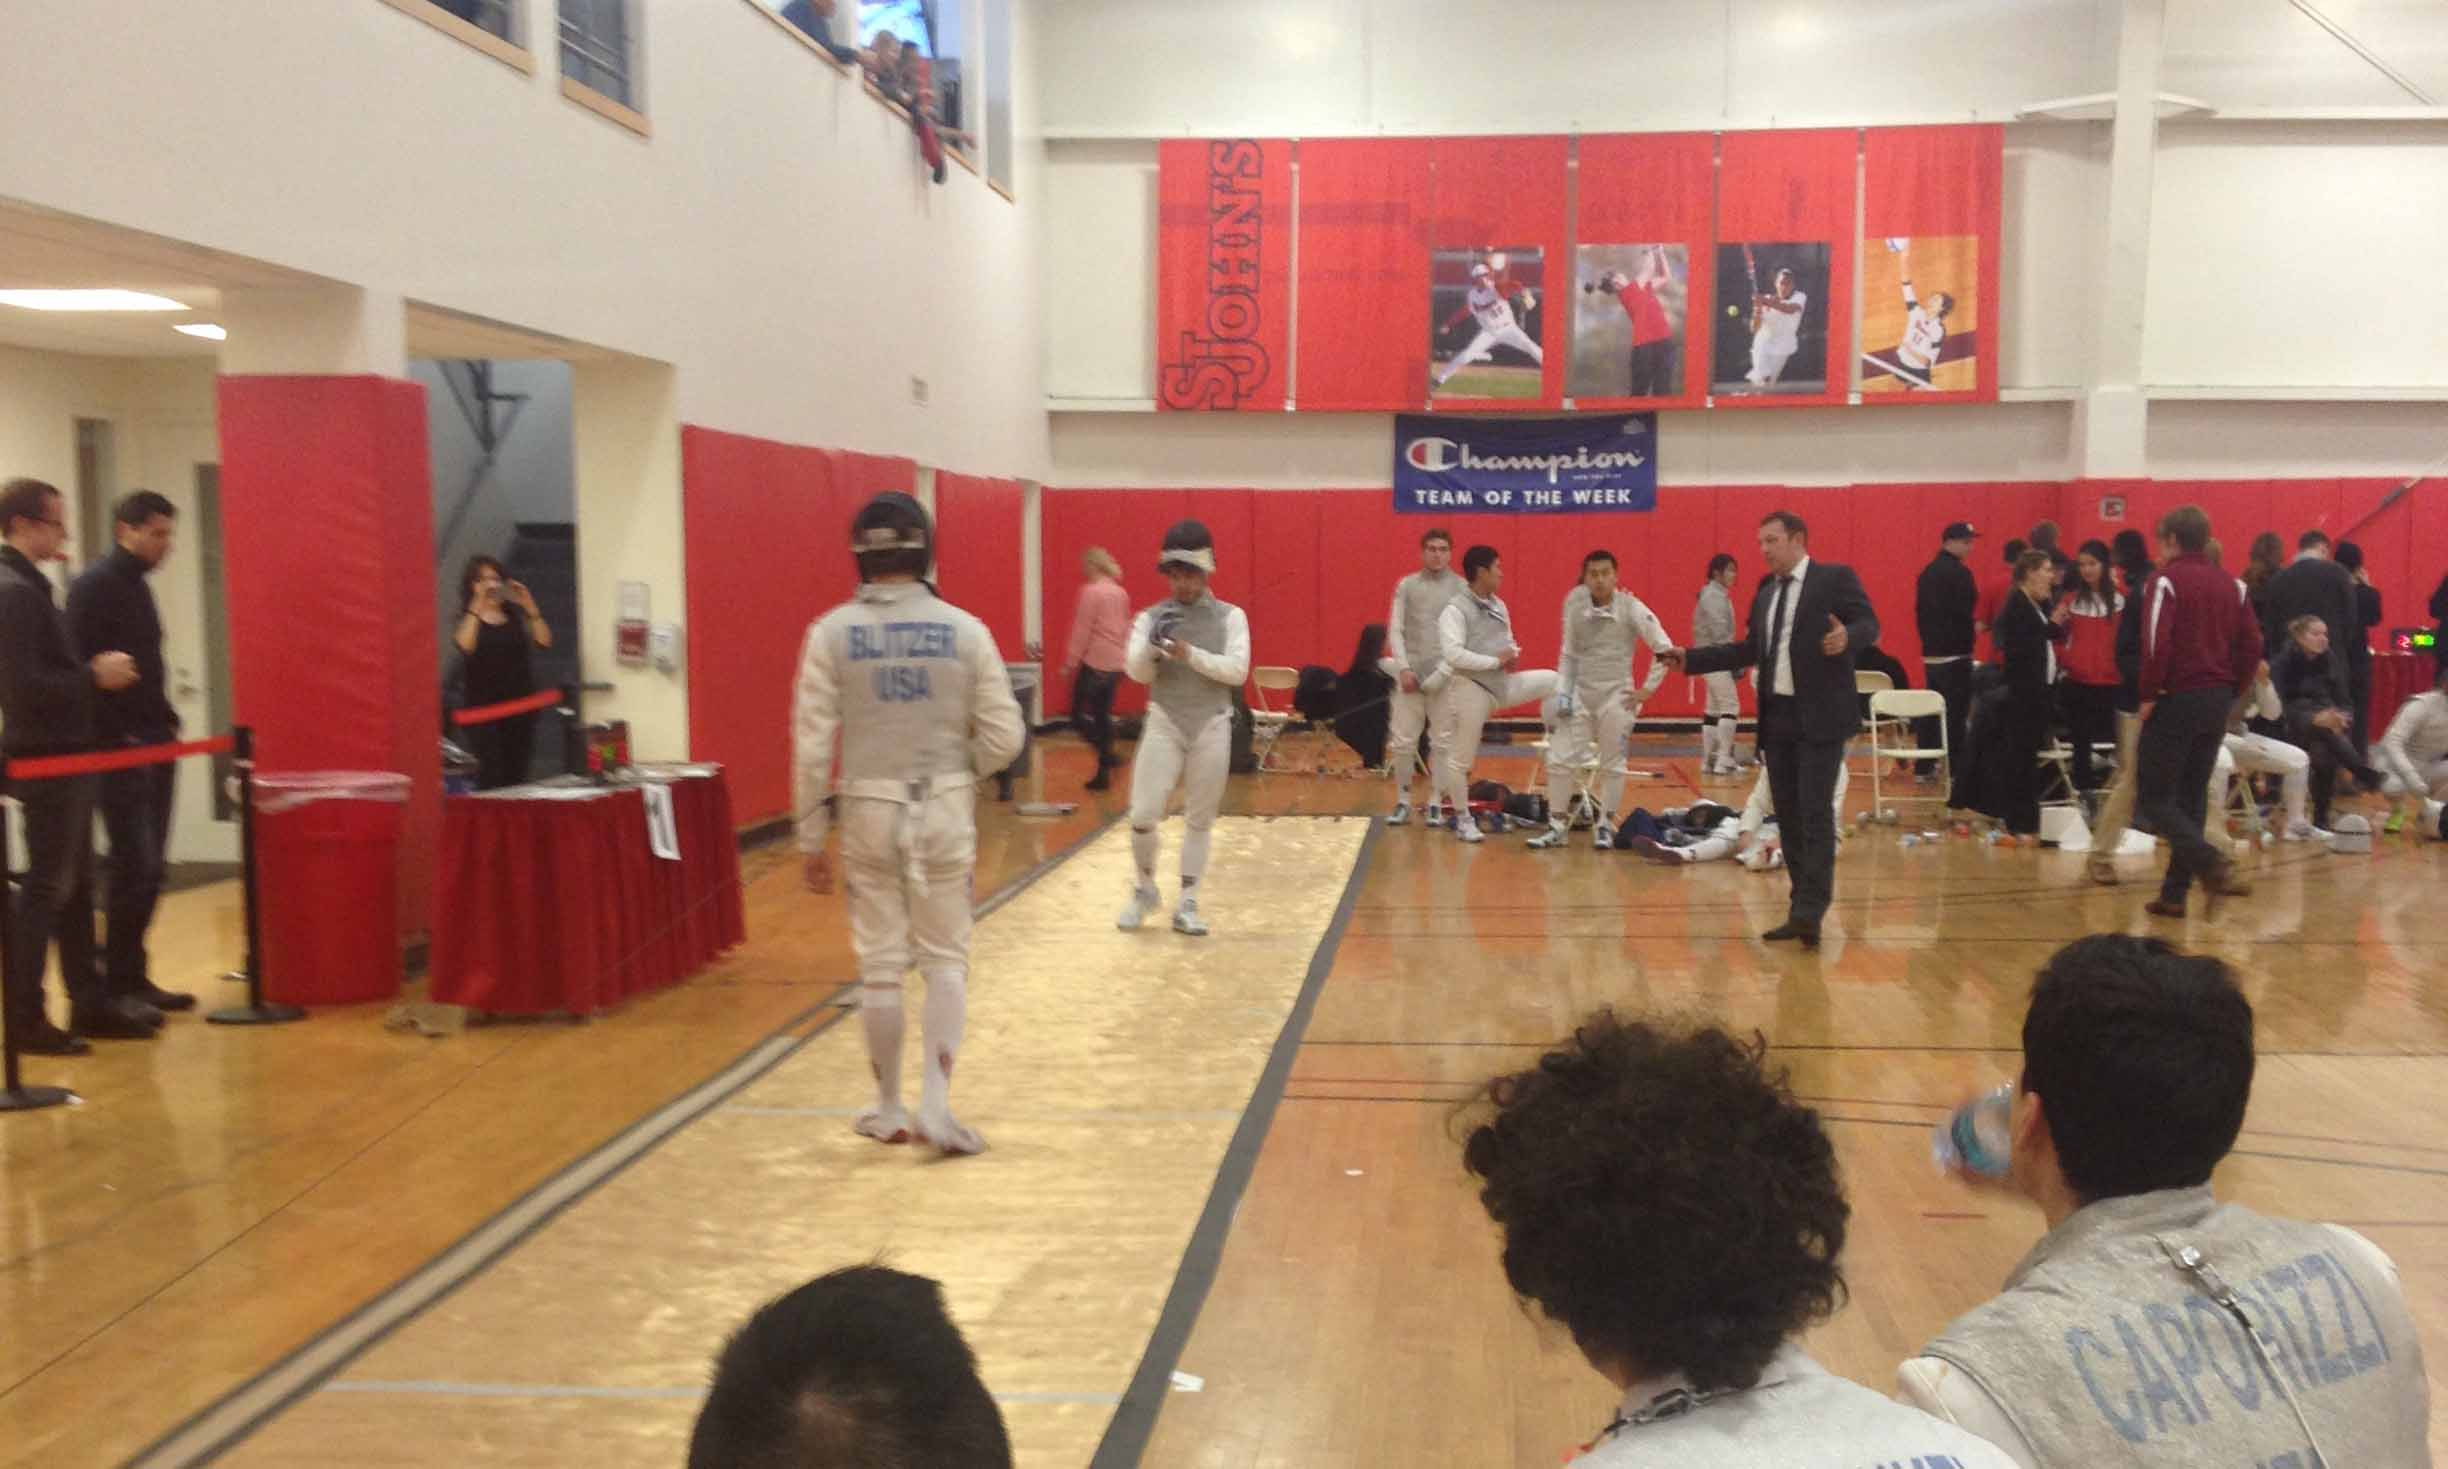 After Sunday's invitational, Blitzer admitted there are aspects of his fencing he needs to work on.